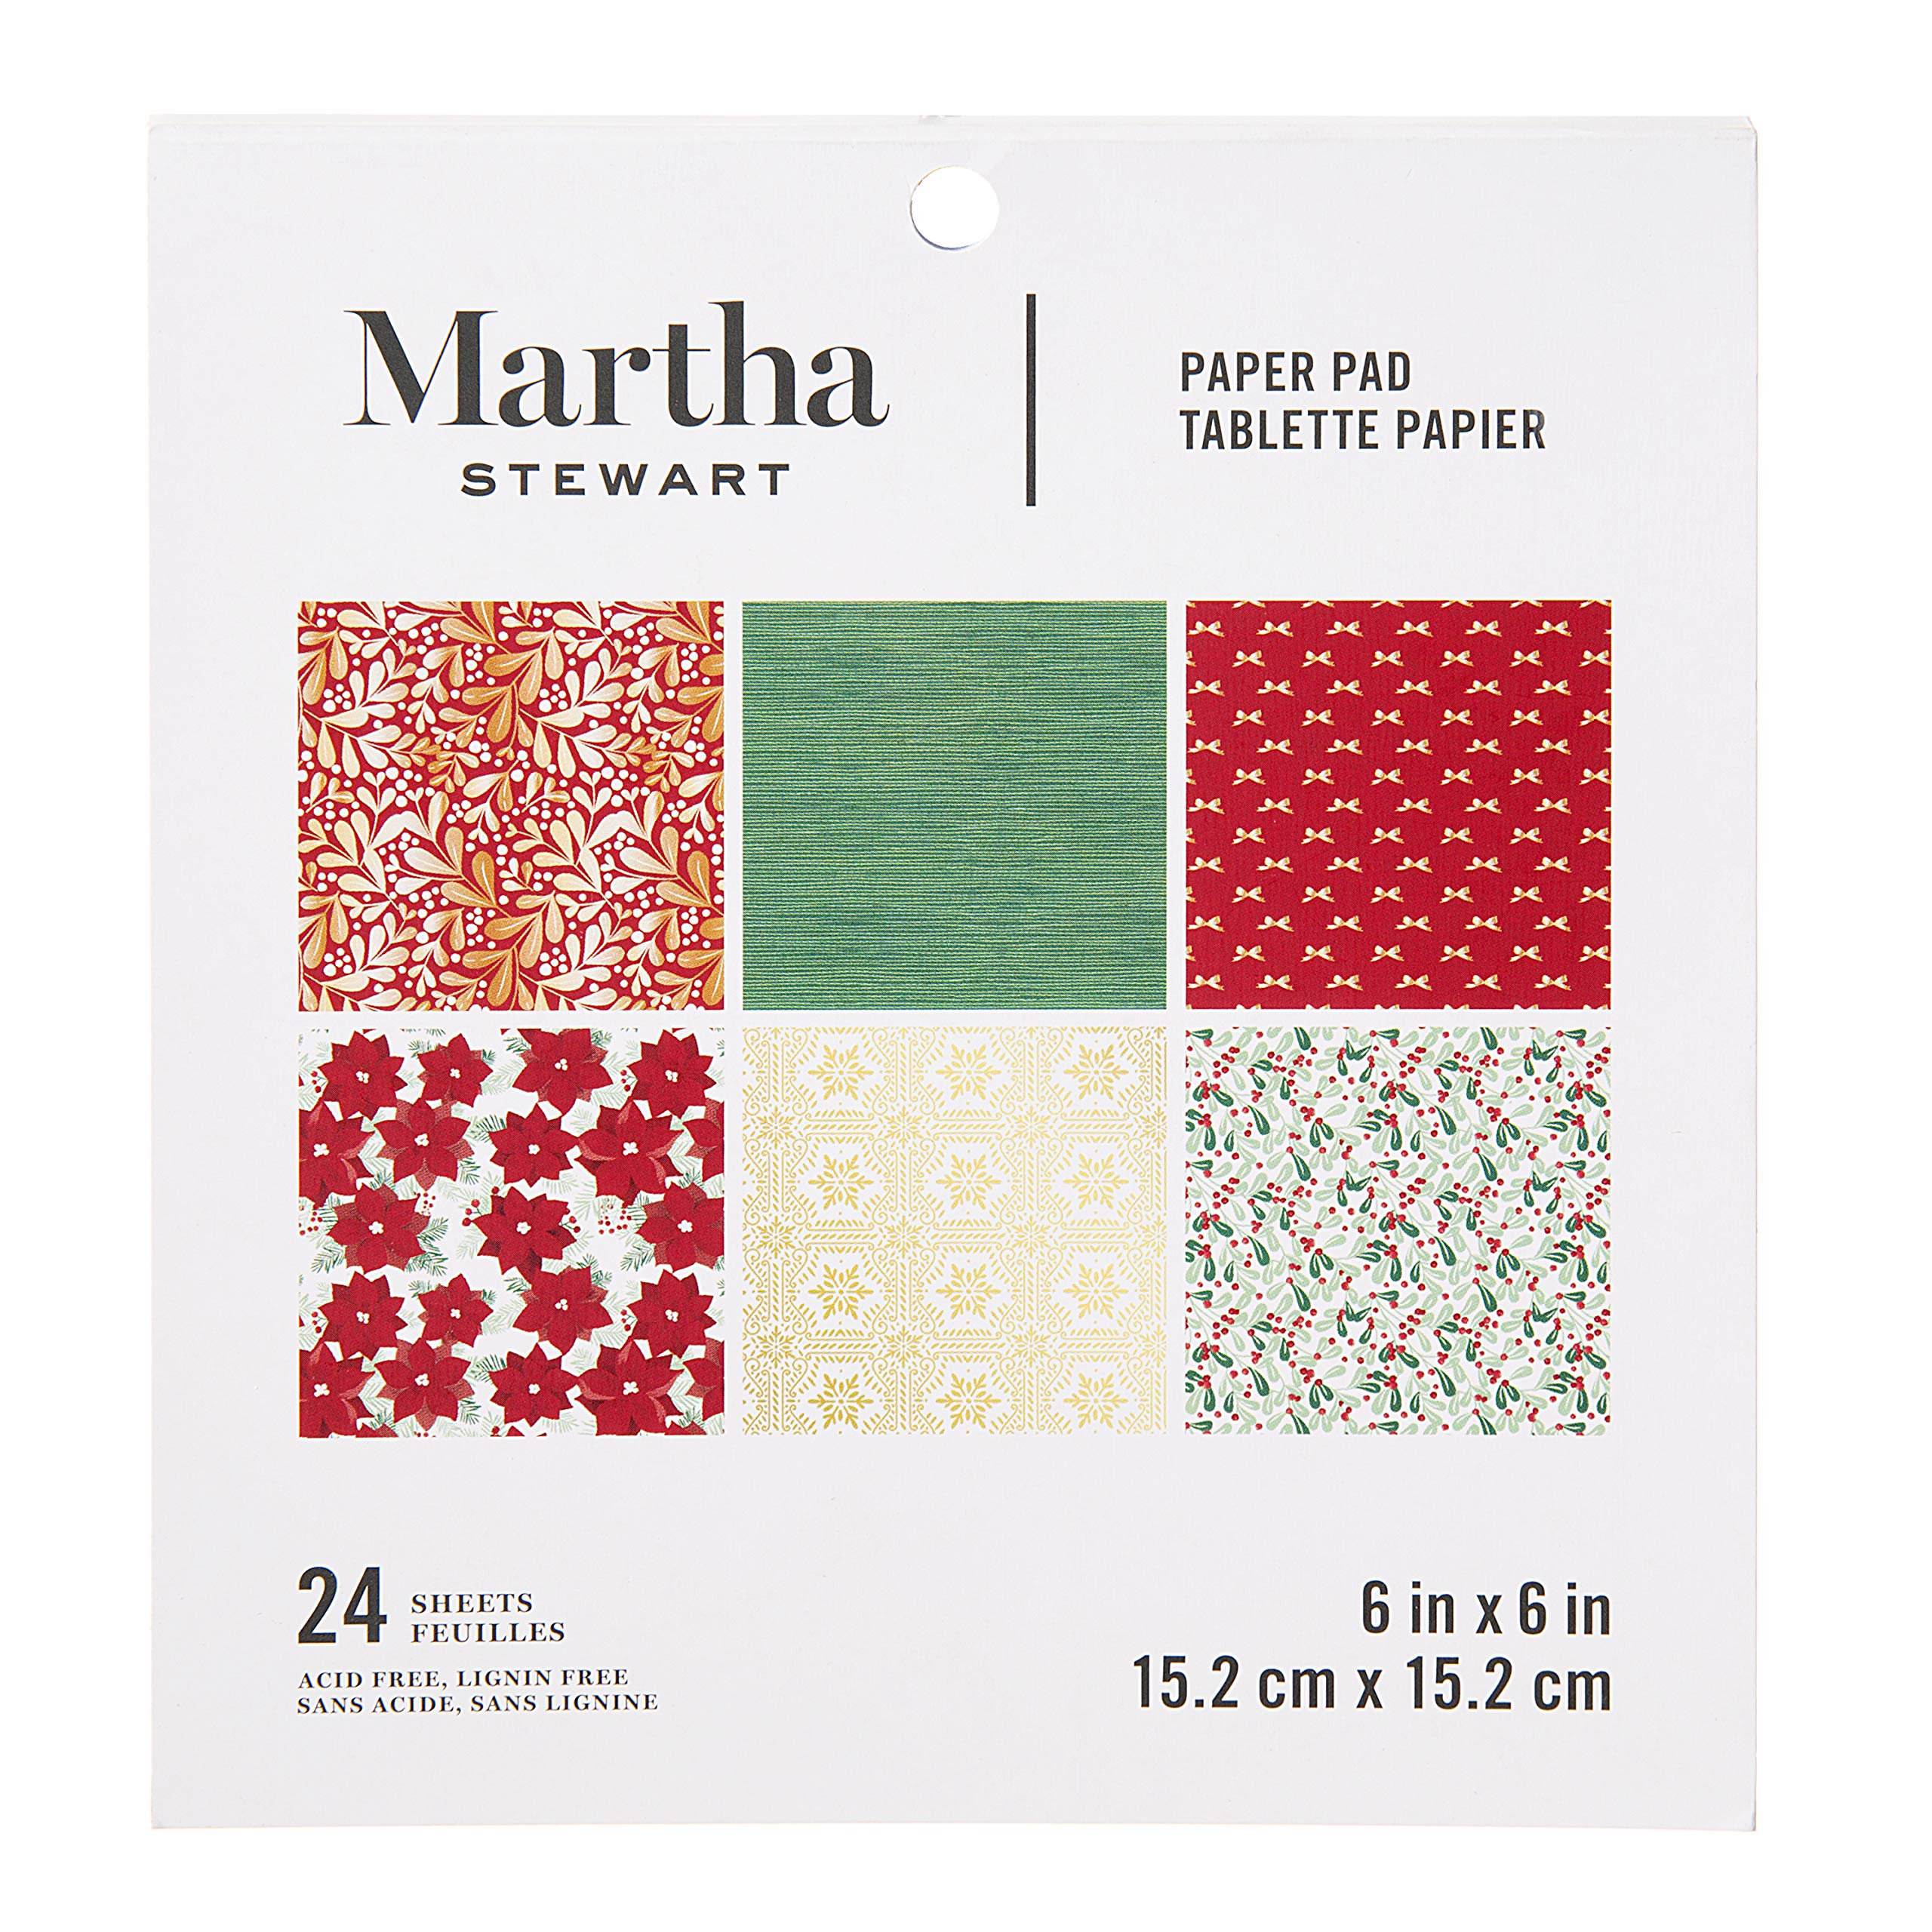 Martha Stewart 30068359 Paper Pad-Red/White/Greenery 6x6 Paperpad 6 x 6 inches Multicolor by Martha Stewart (Image #1)